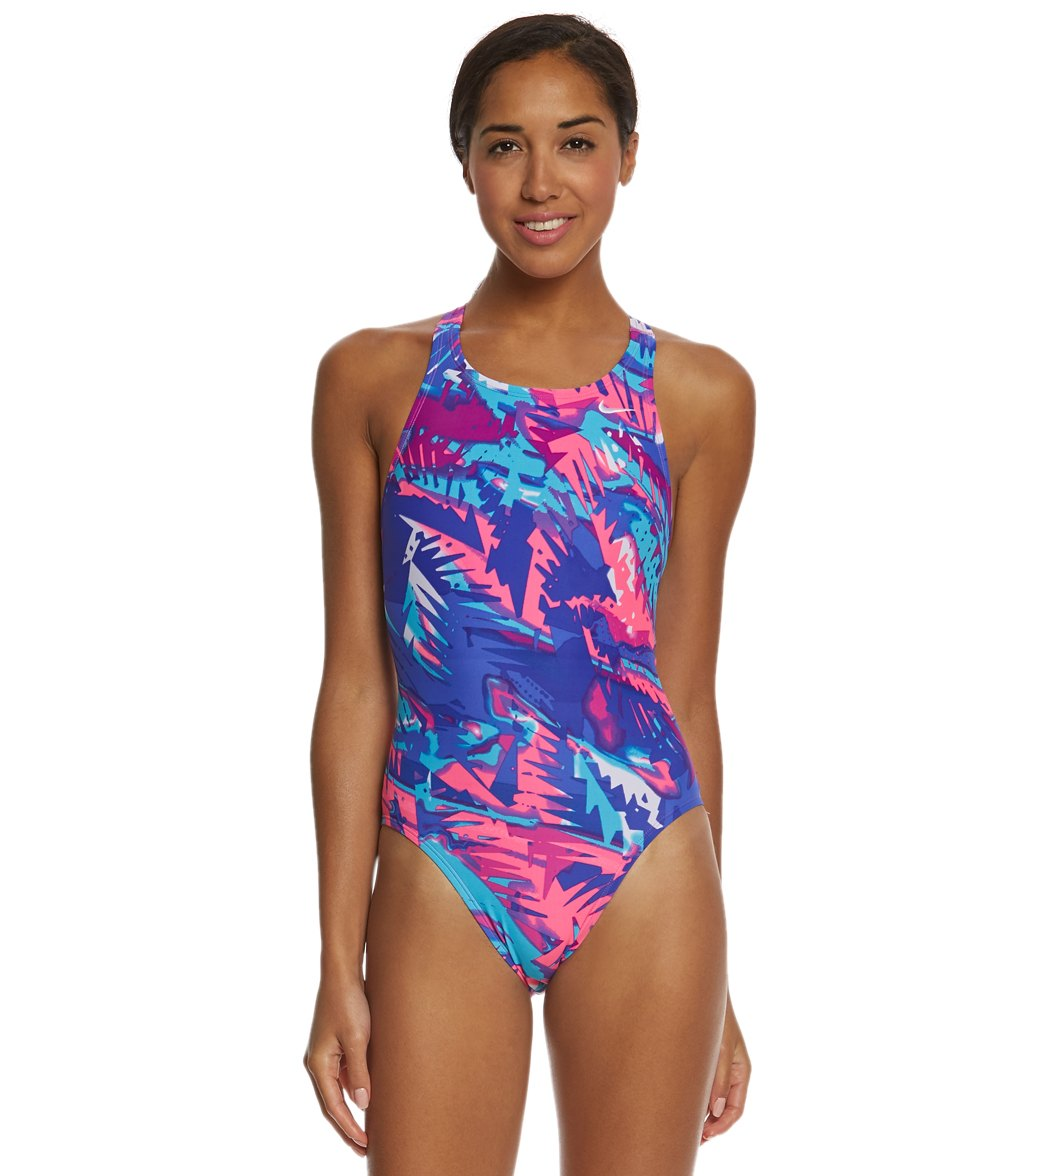 92ba78a9b92 Nike Women's Tropic Fastback Tank One Piece Swimsuit at SwimOutlet.com -  Free Shipping